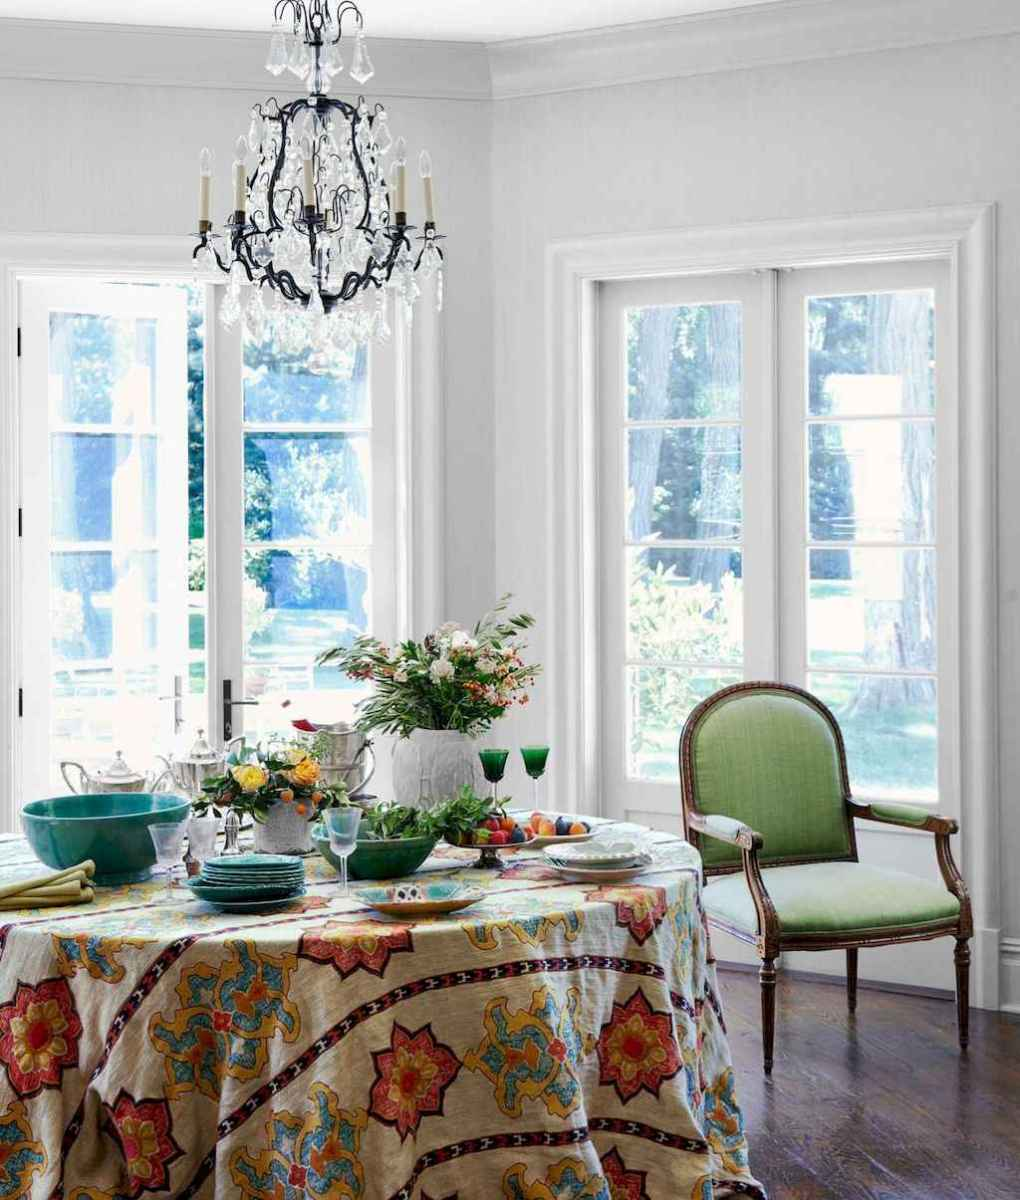 39 Incredible French Country Living Room Decor Ideas